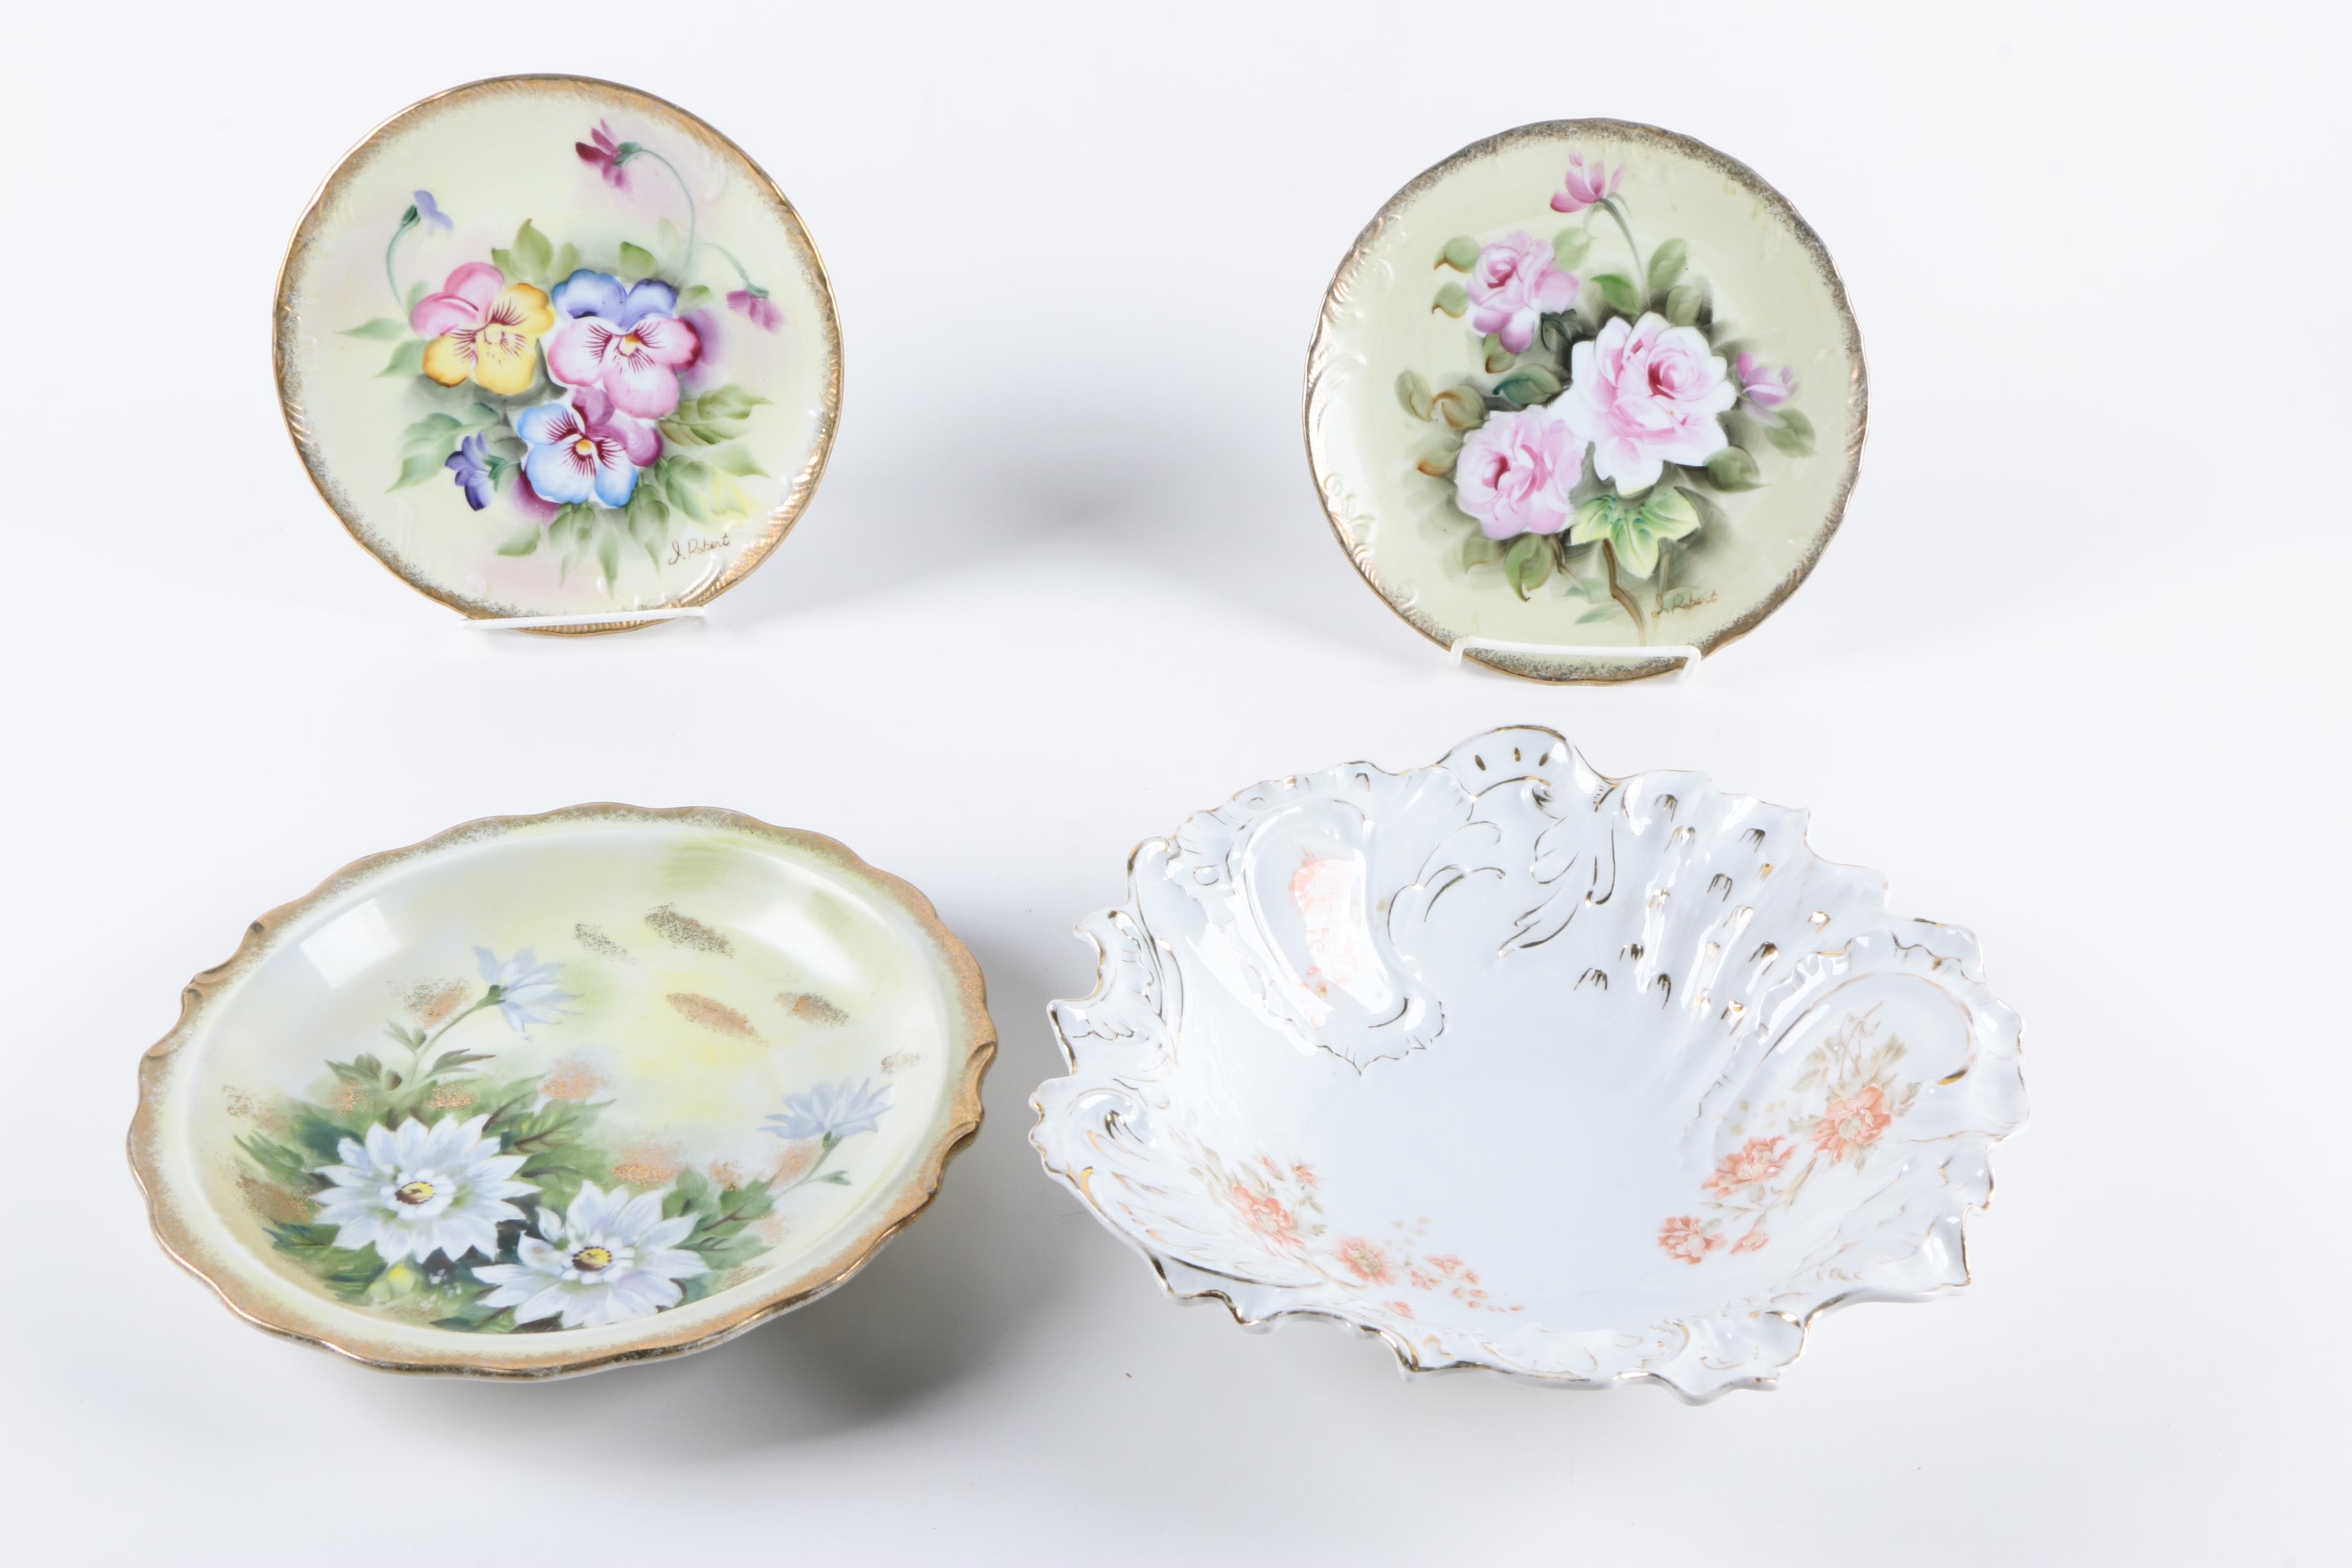 Antique Carl Tielsch Bowl and Other Hand Painted Plates